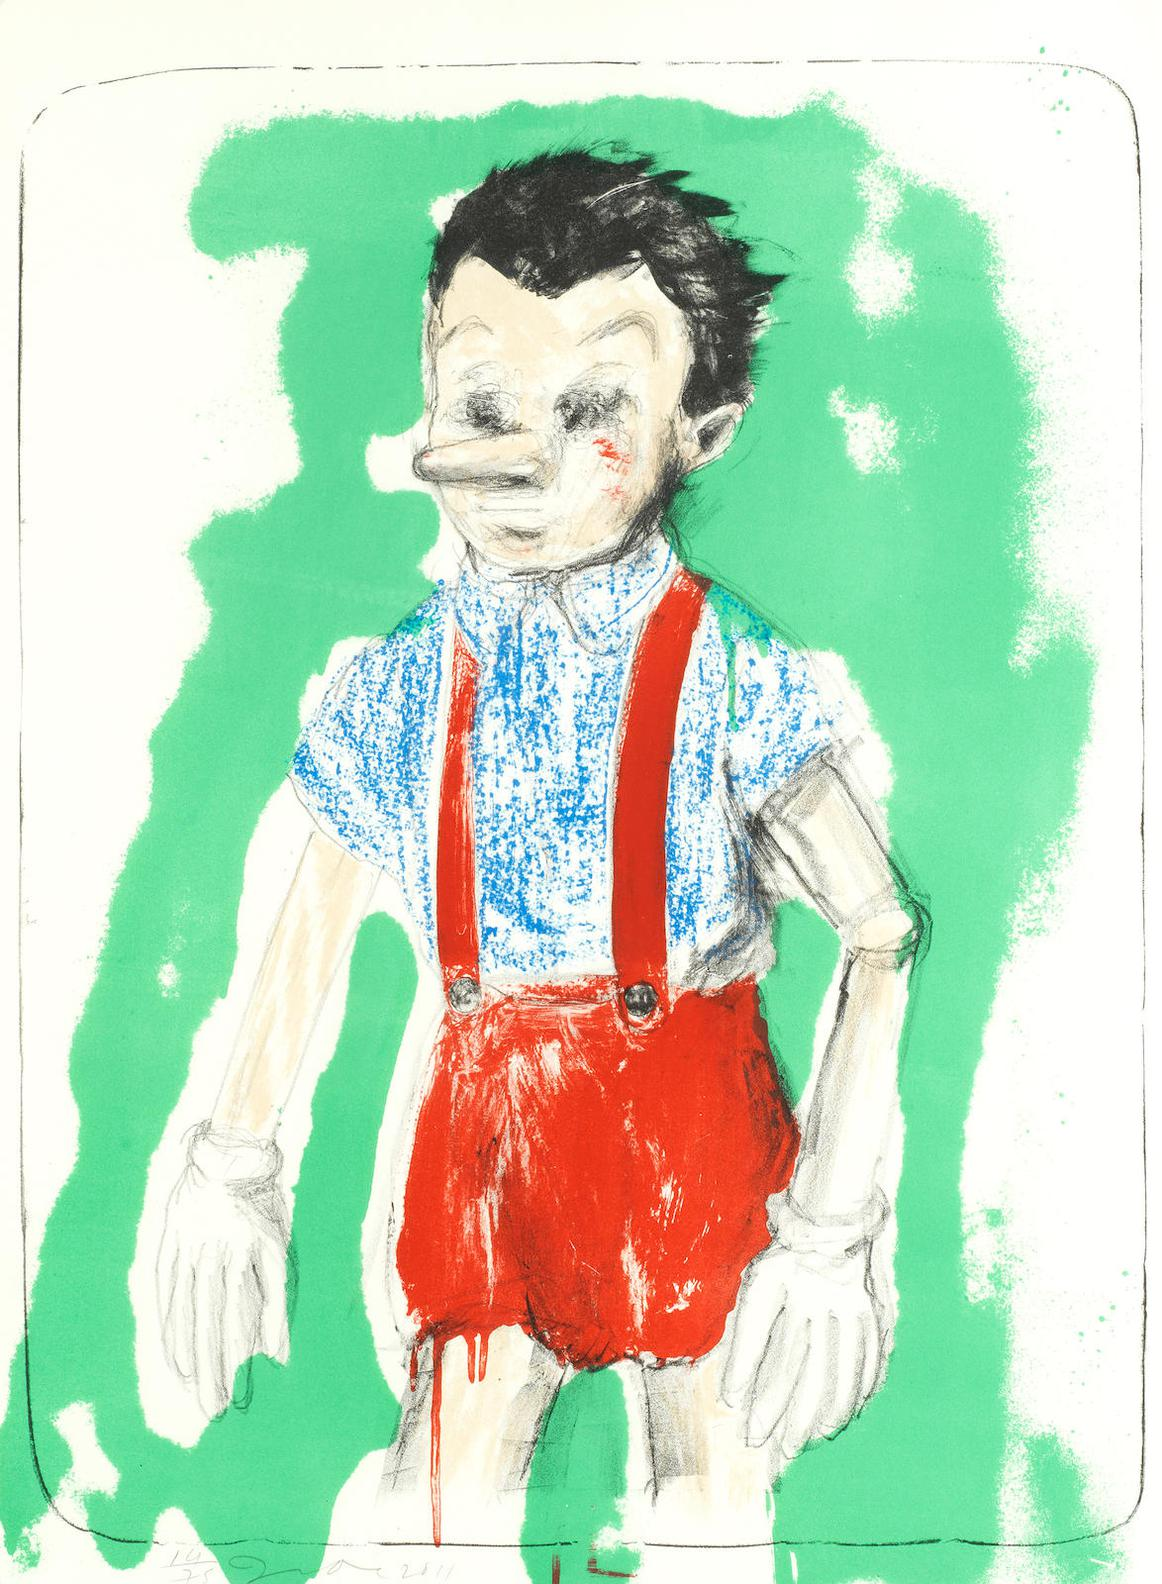 Jim Dine-Pinocchio Coming From The Green-2011